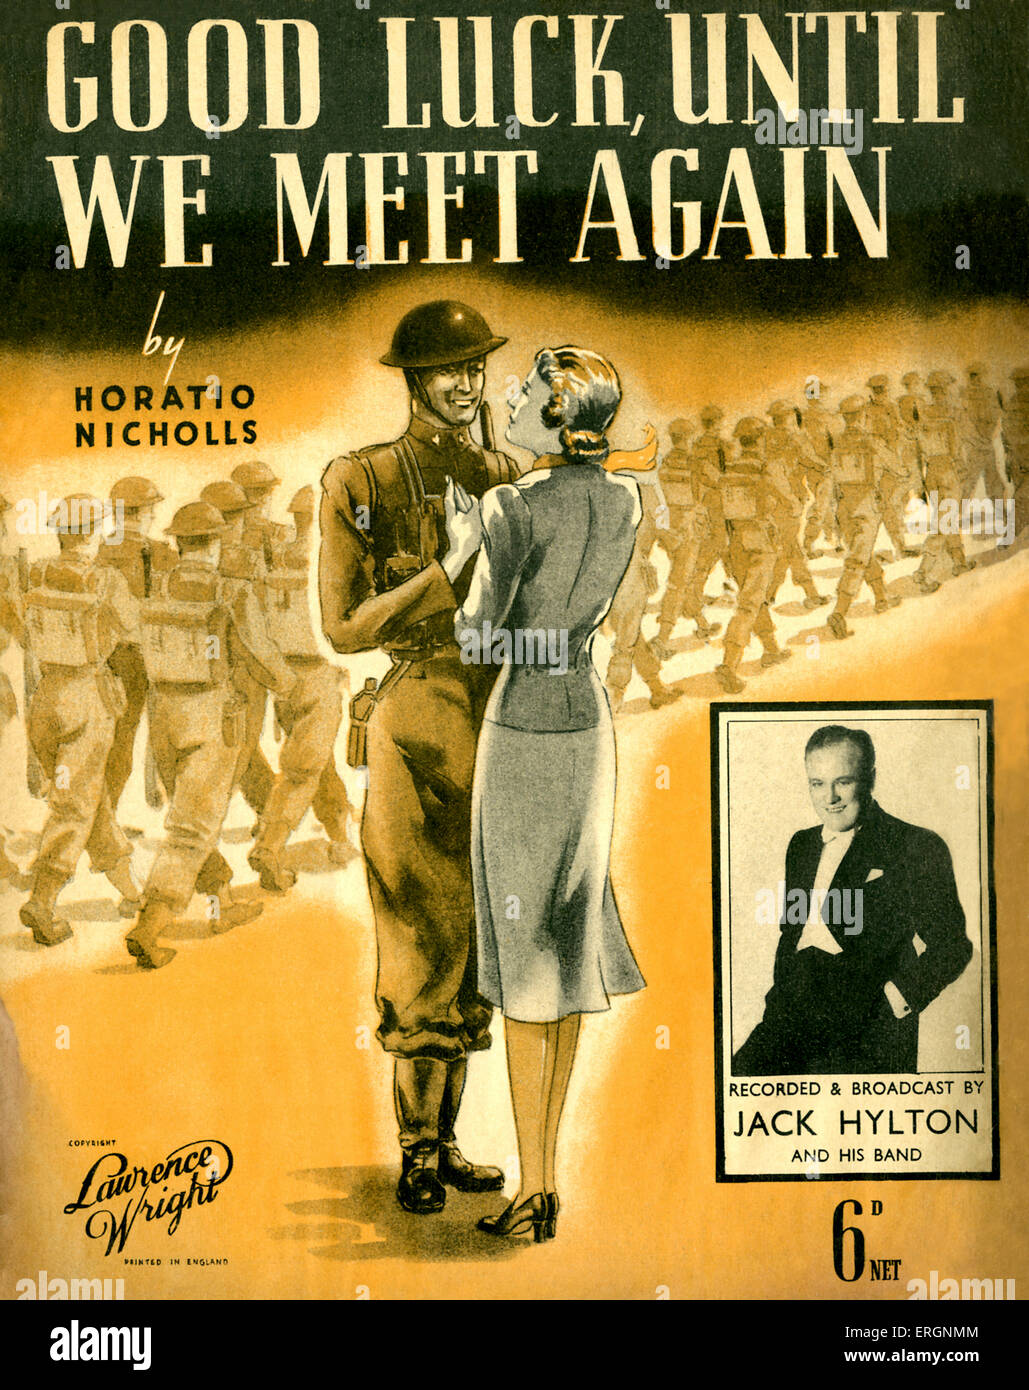 Good Luck Until We Meet Again, - score cover -  song written and composed by Horatio Nicholls, recorded and broadcast - Stock Image